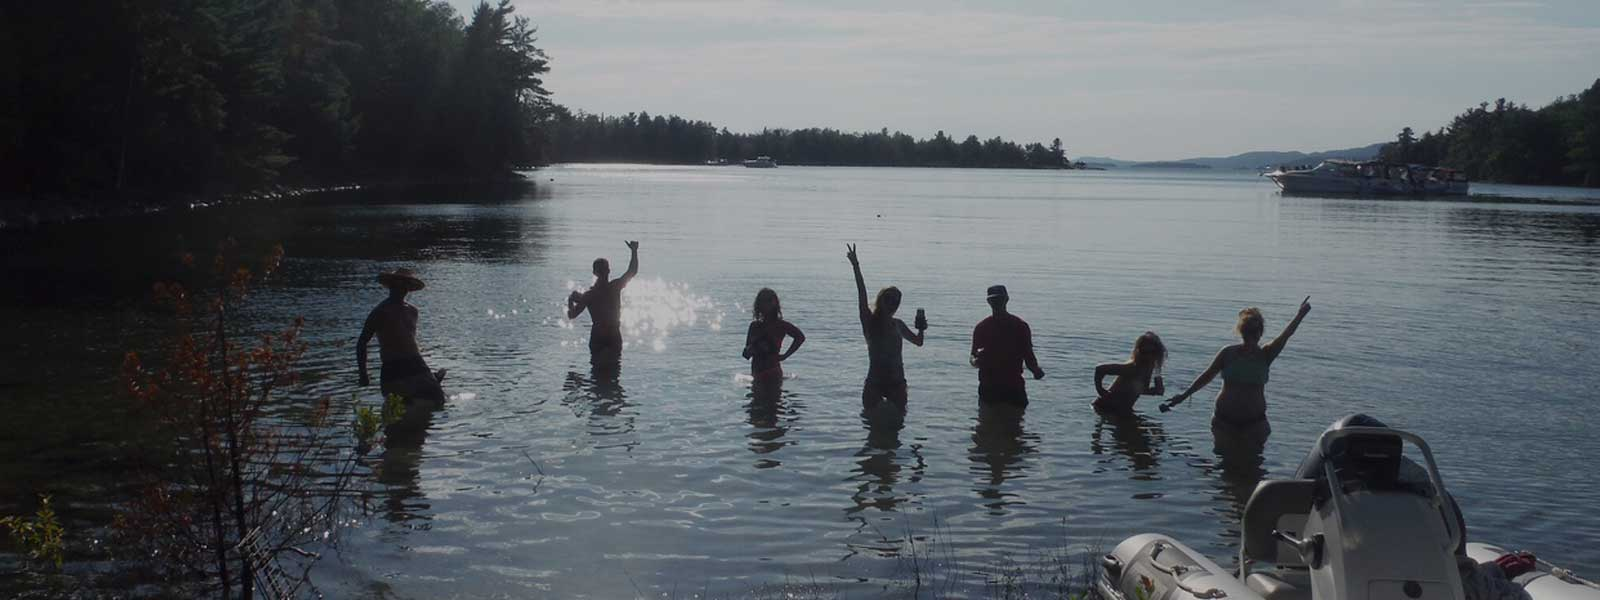 Participants jumping in lake